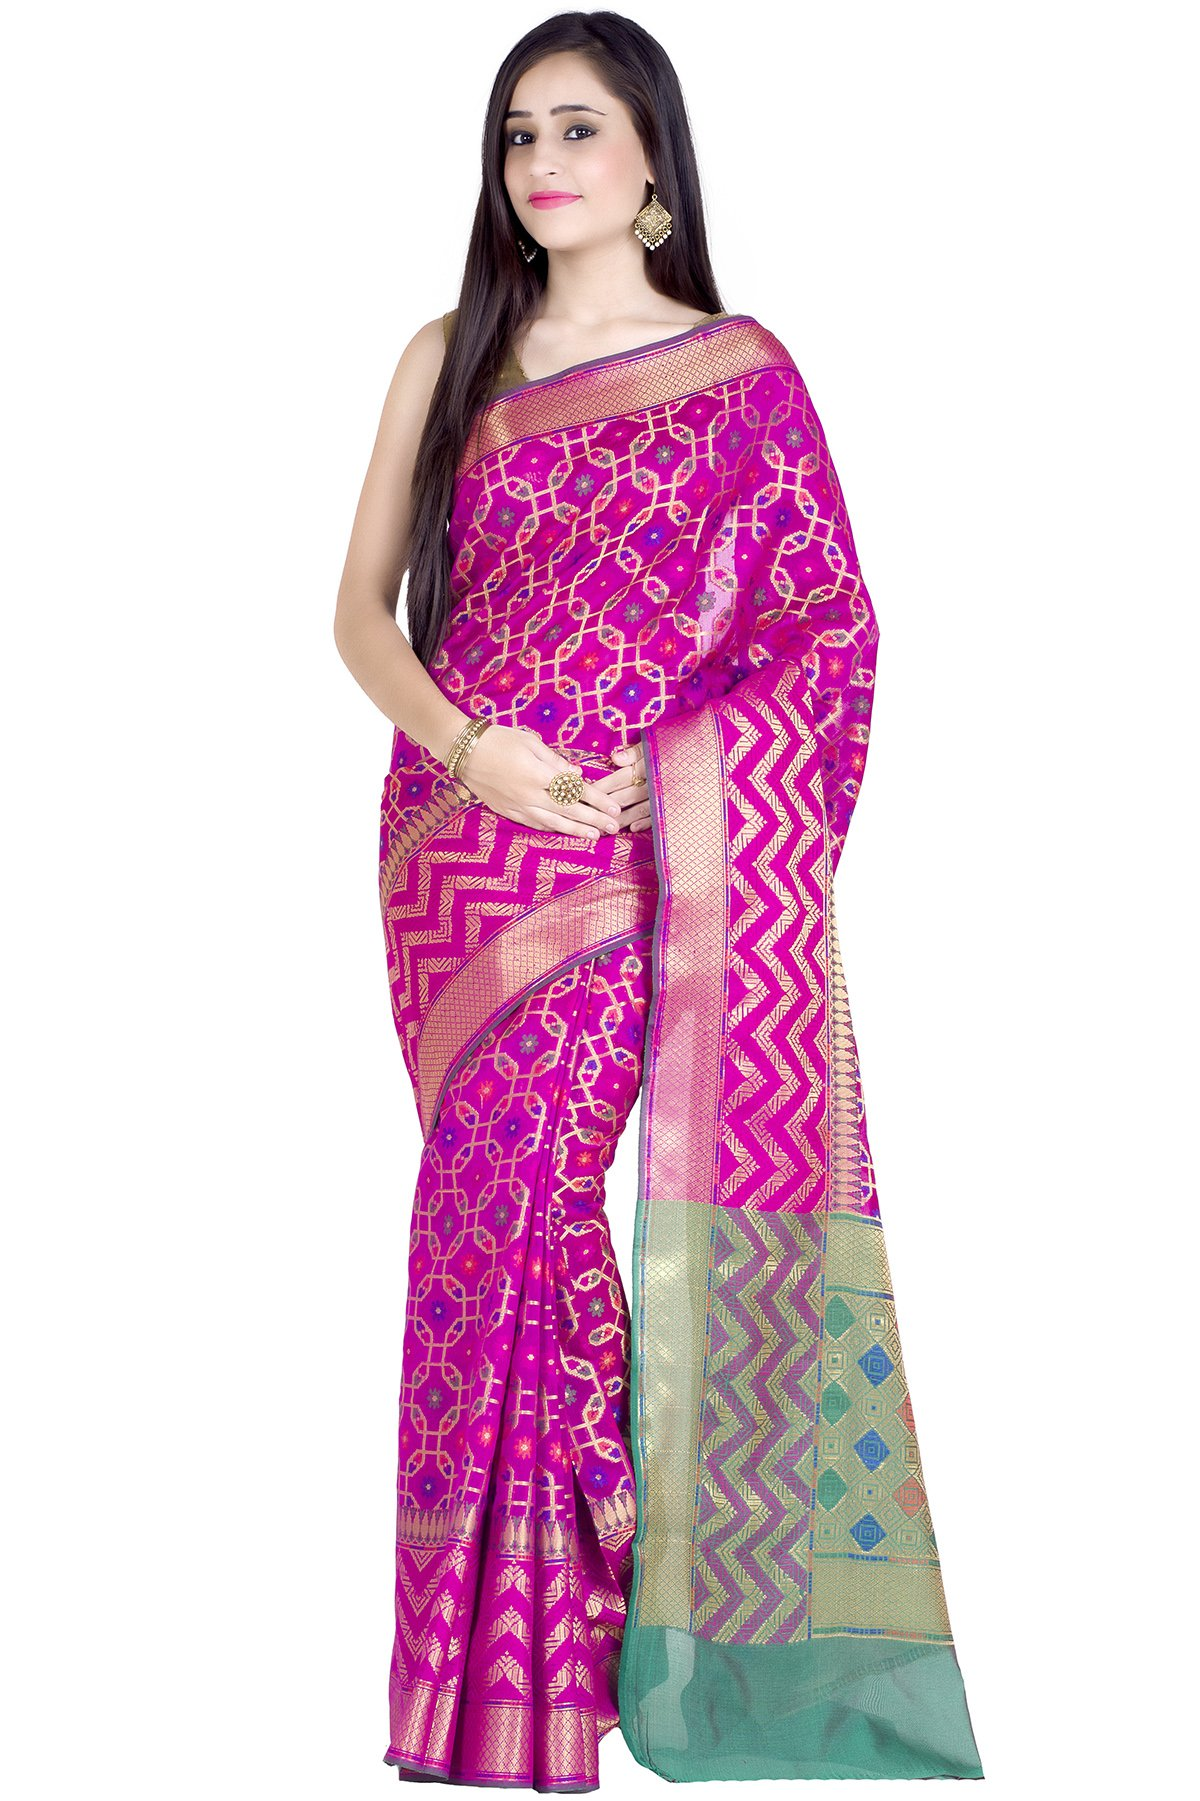 Chandrakala Women's Magenta Cotton Silk Banarasi Saree(1242MAG)